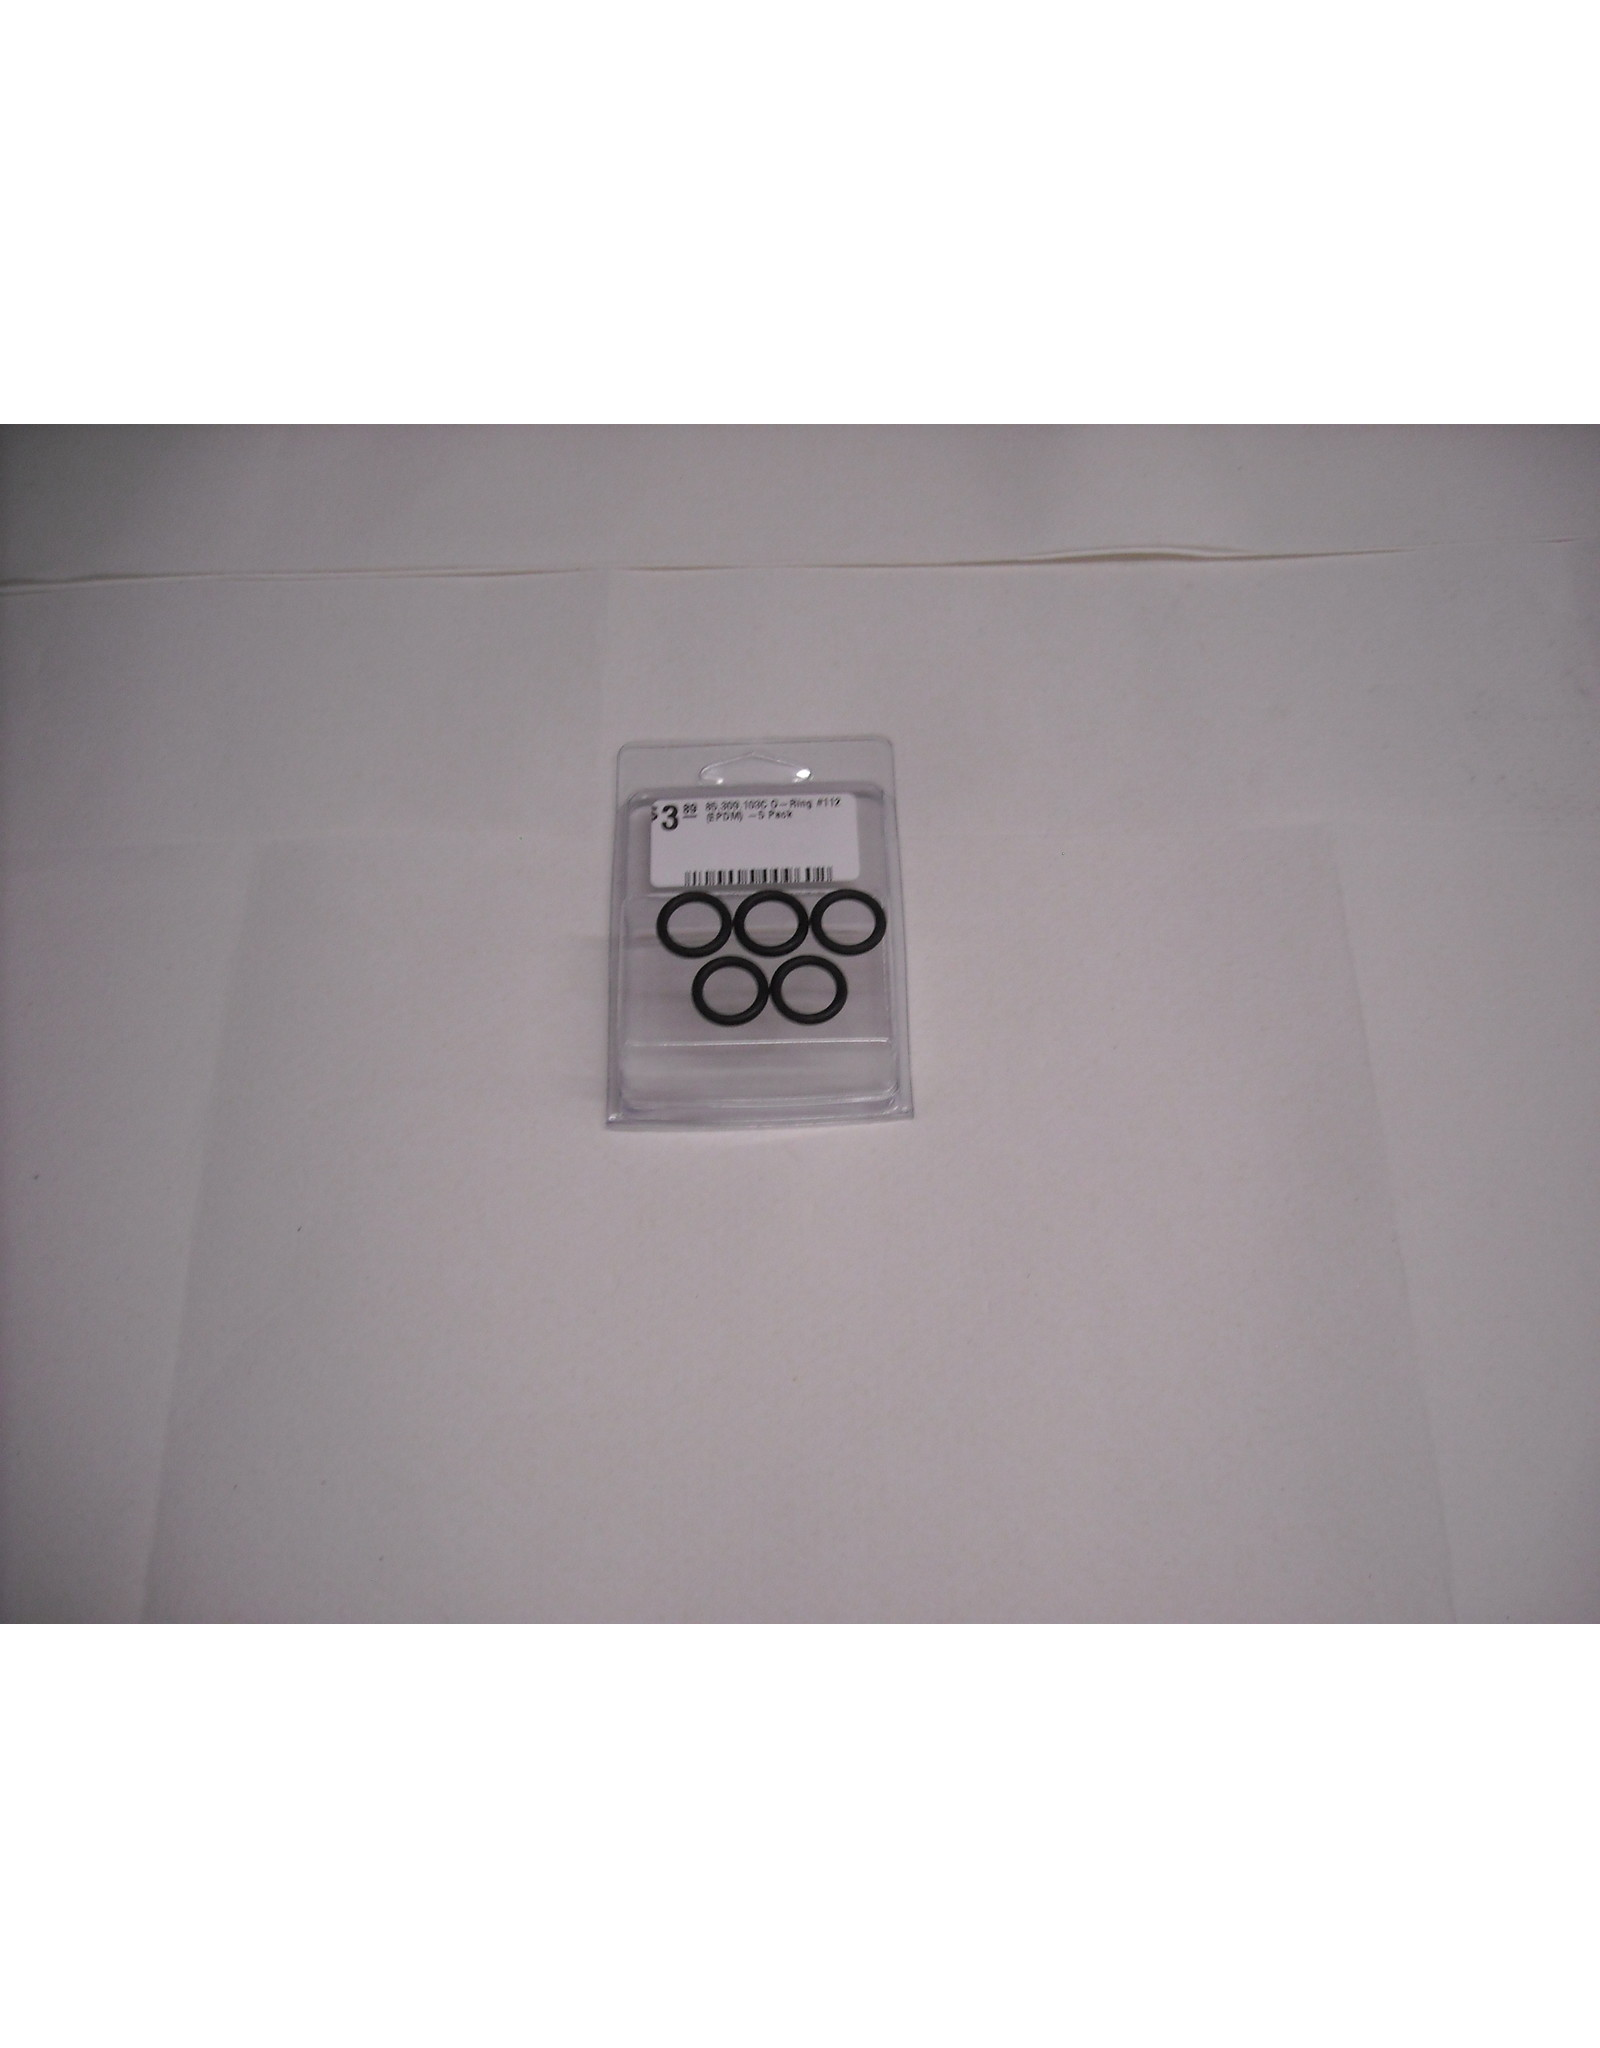 BE 85.309.103C O-Ring #112 (EPDM) -5 Pack